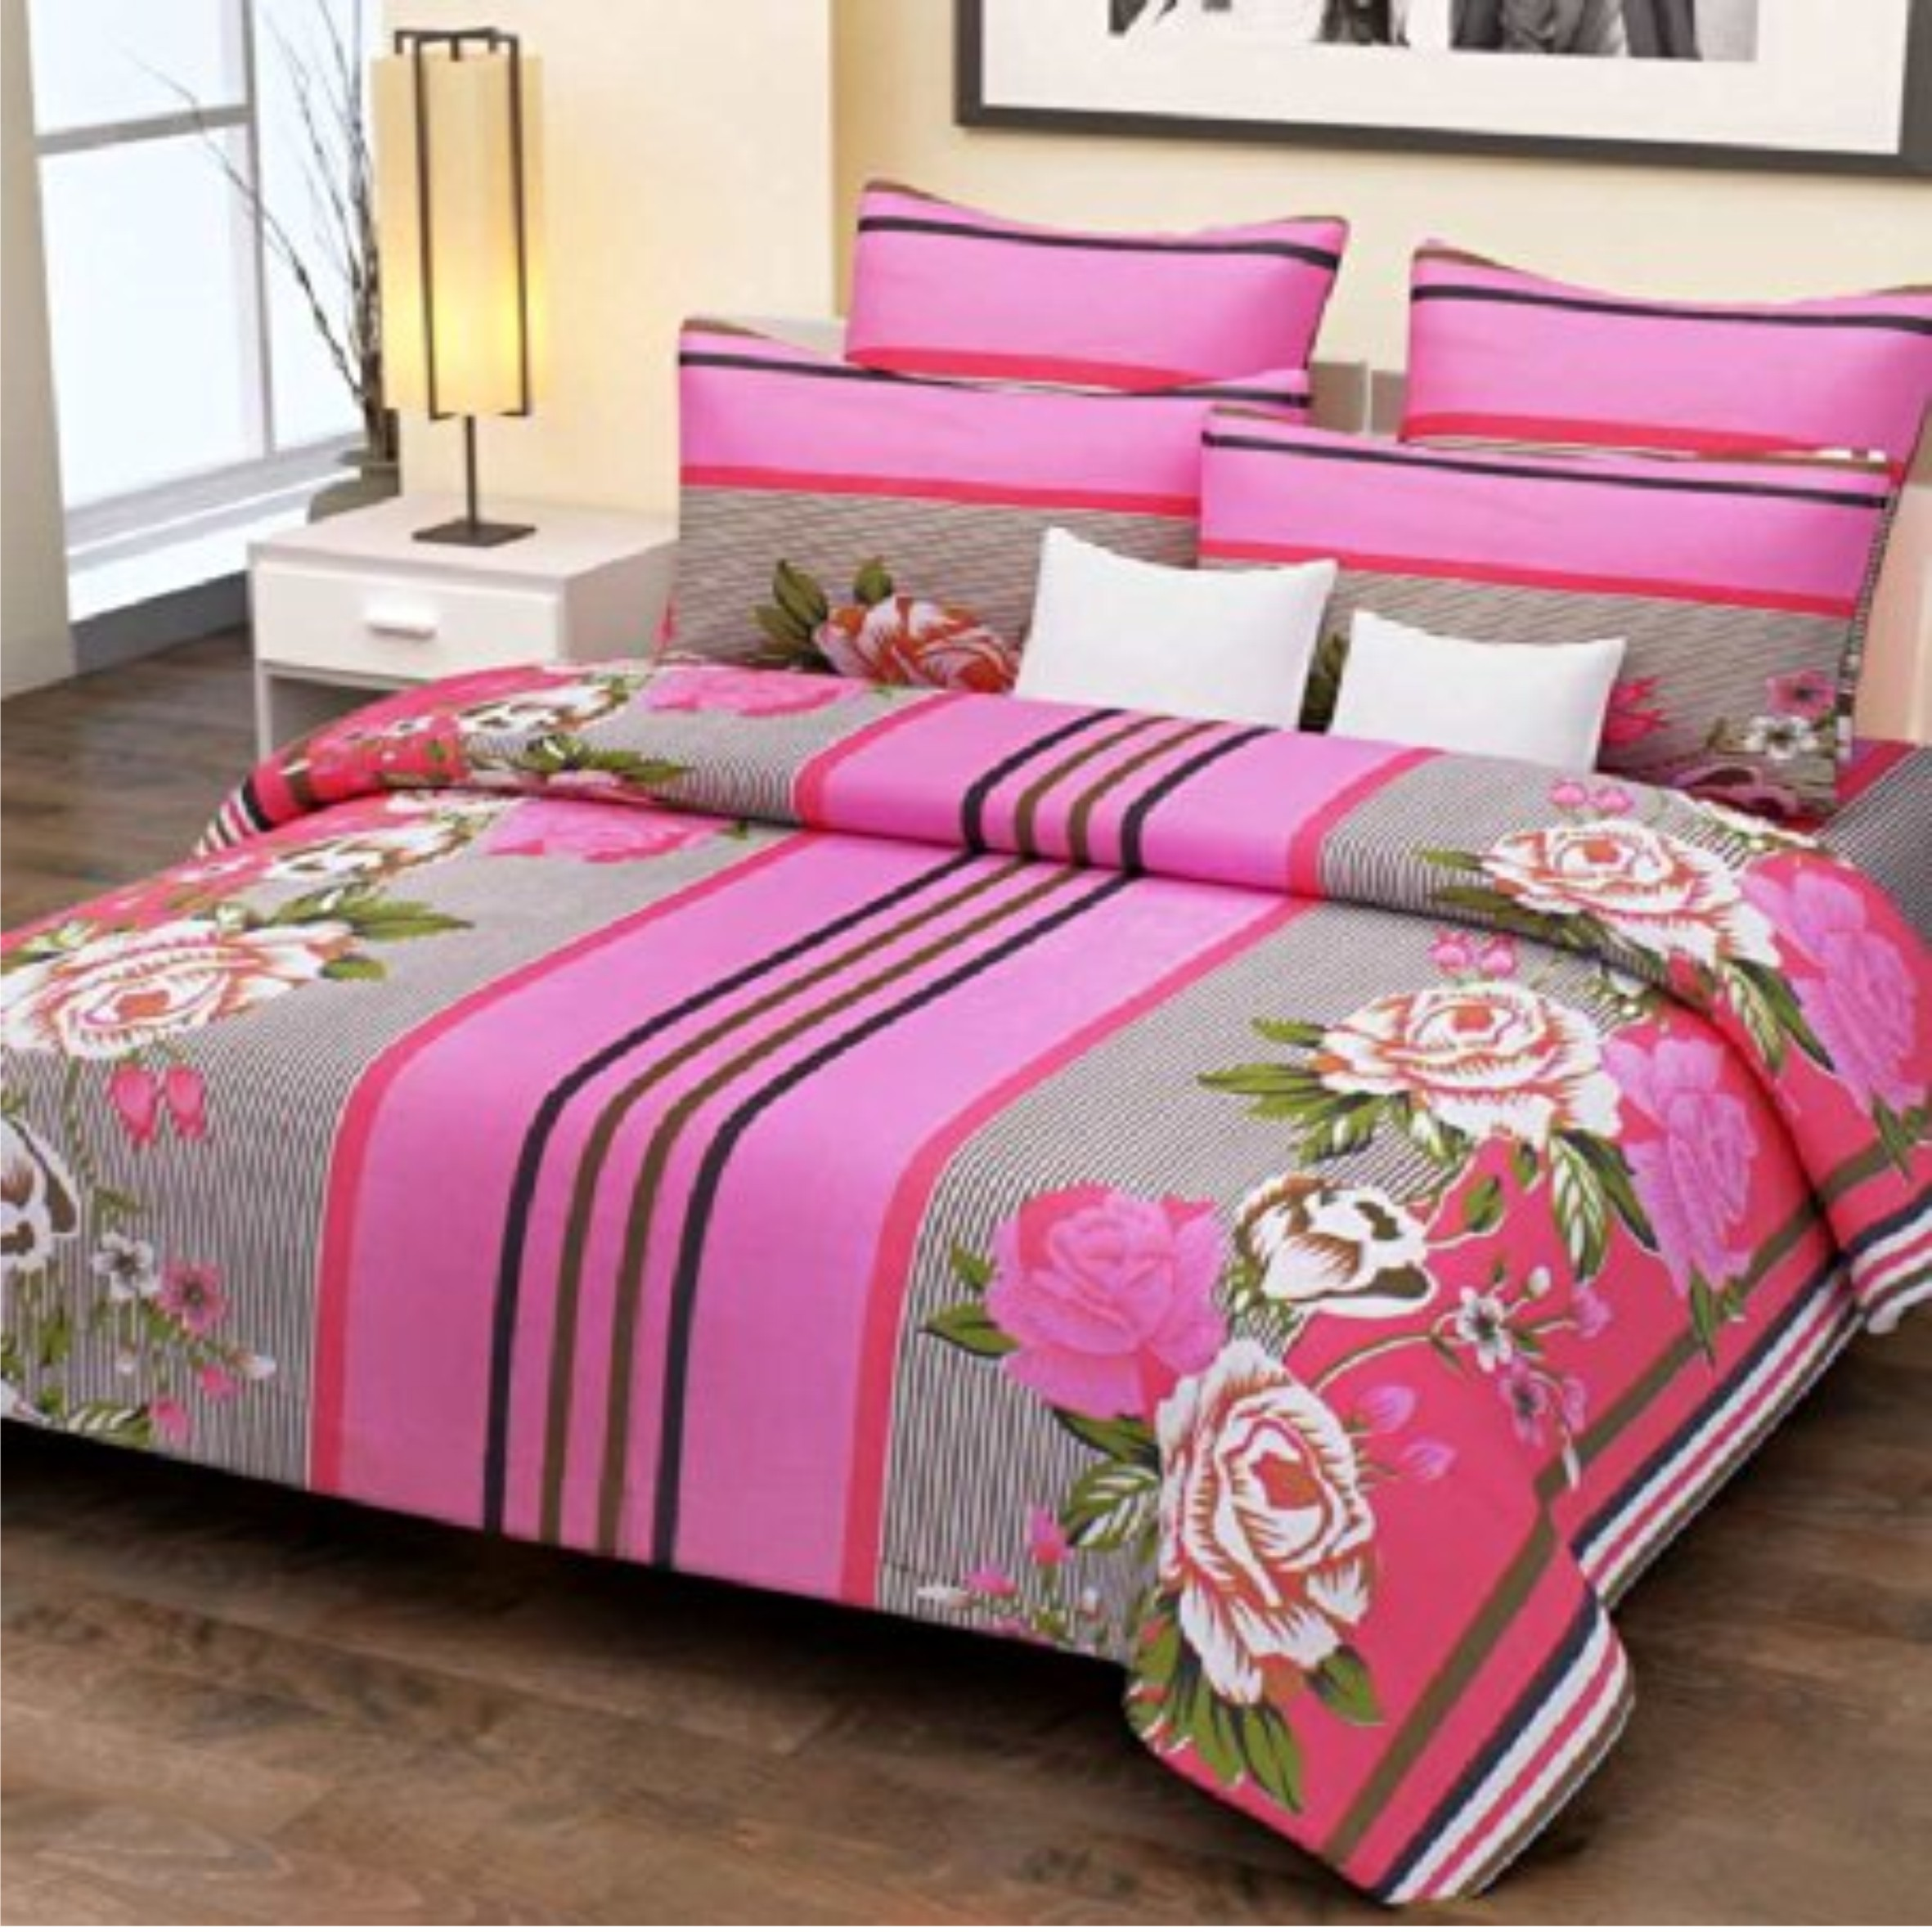 Pink Stripes And Flowers Double Bed Sheet With 2 Pillow Covers Home Candy  100% Cotton [Gnp 509]